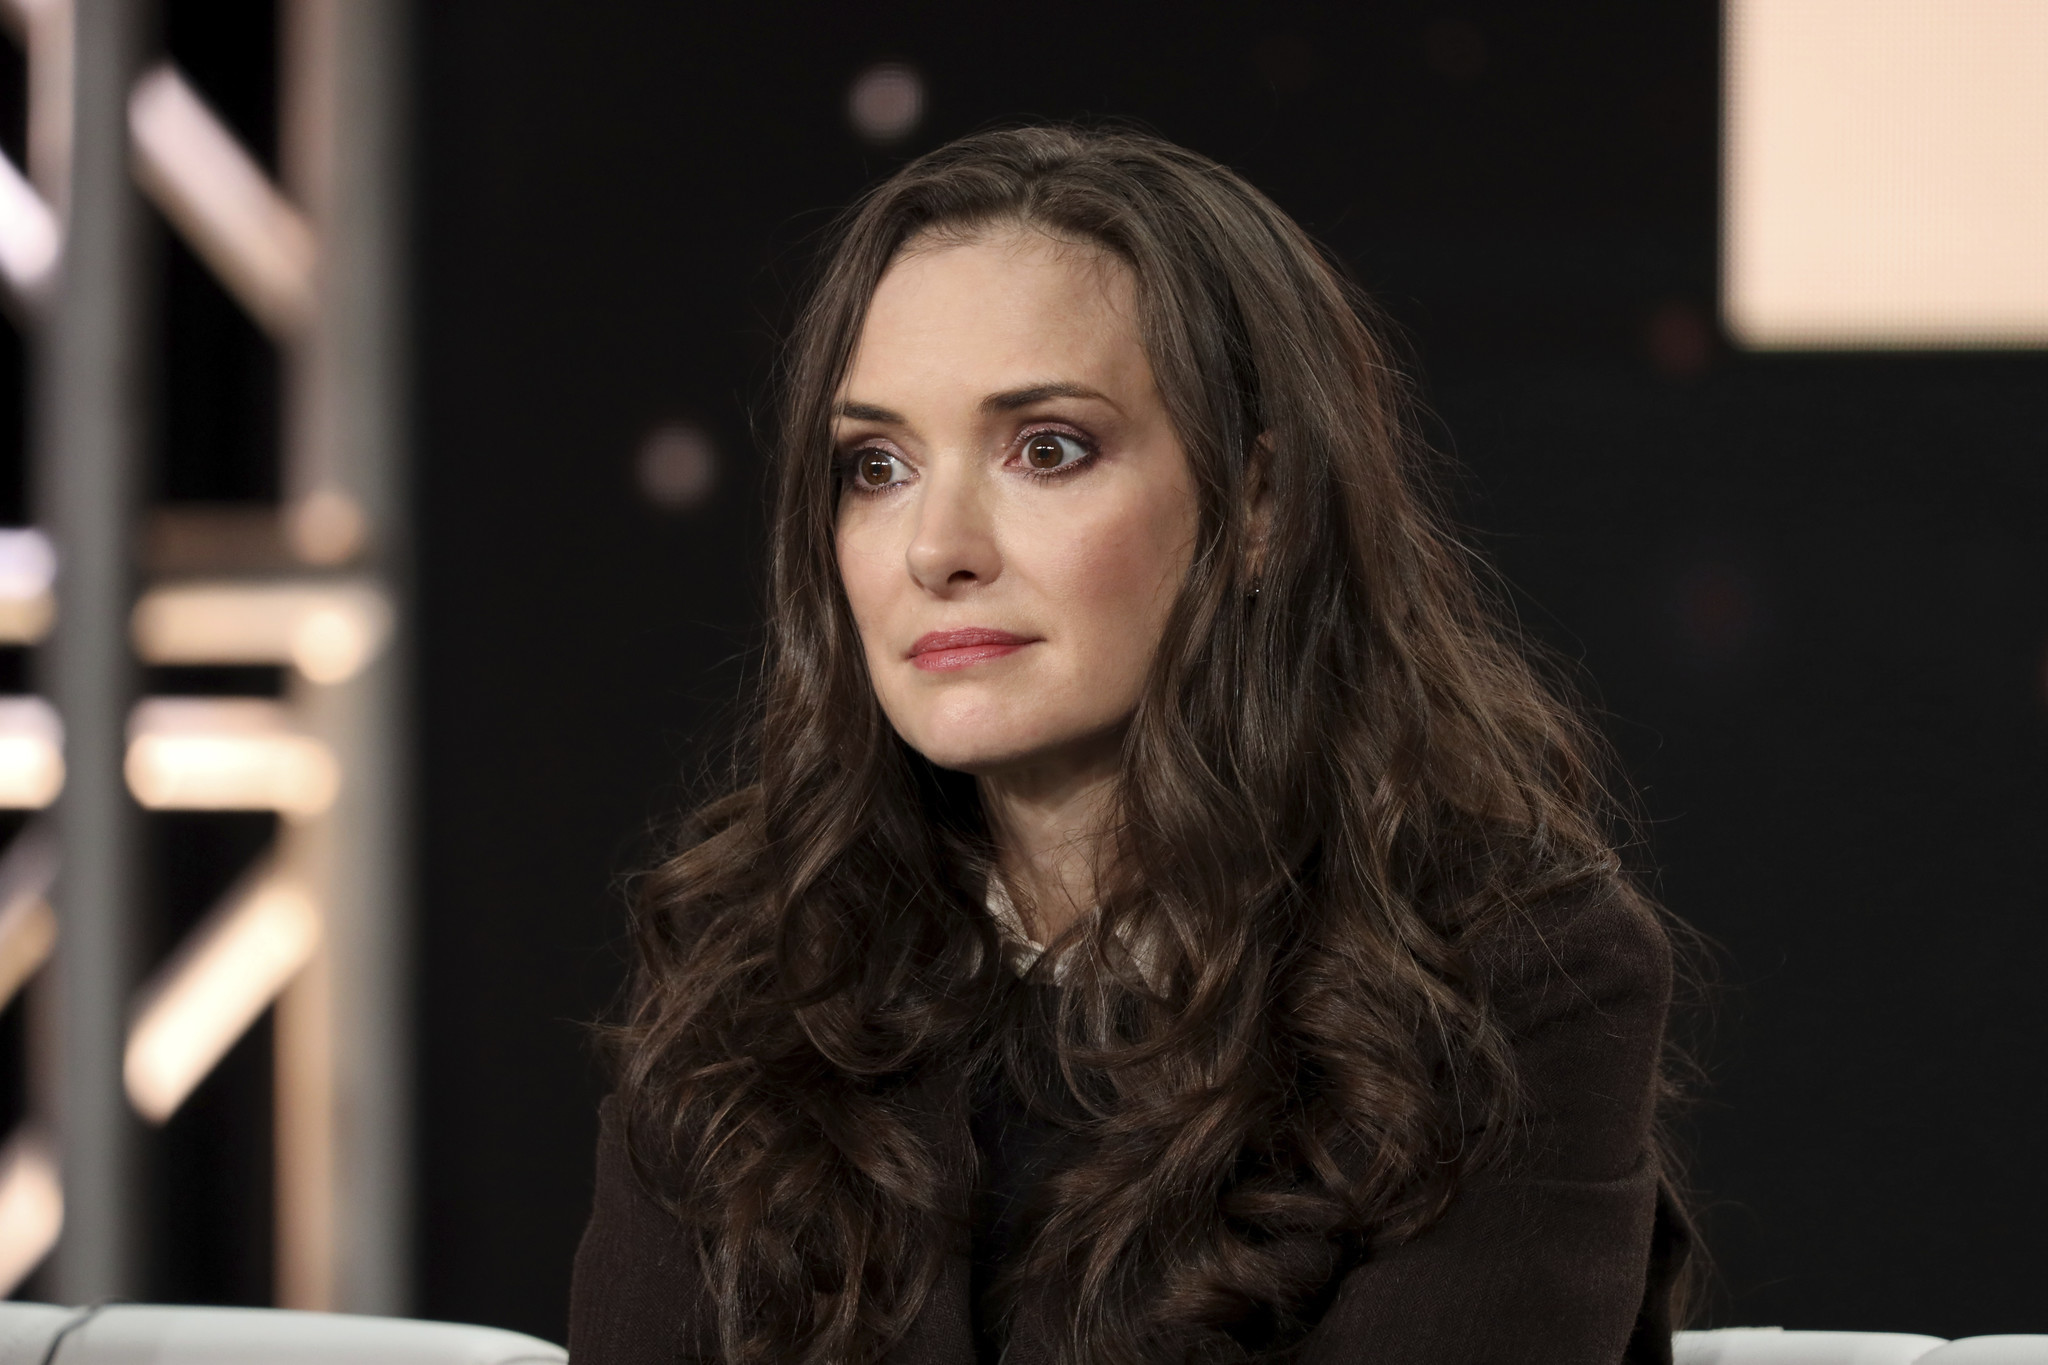 Winona Ryder defends Johnny Depp against Amber Heard's domestic abuse claims